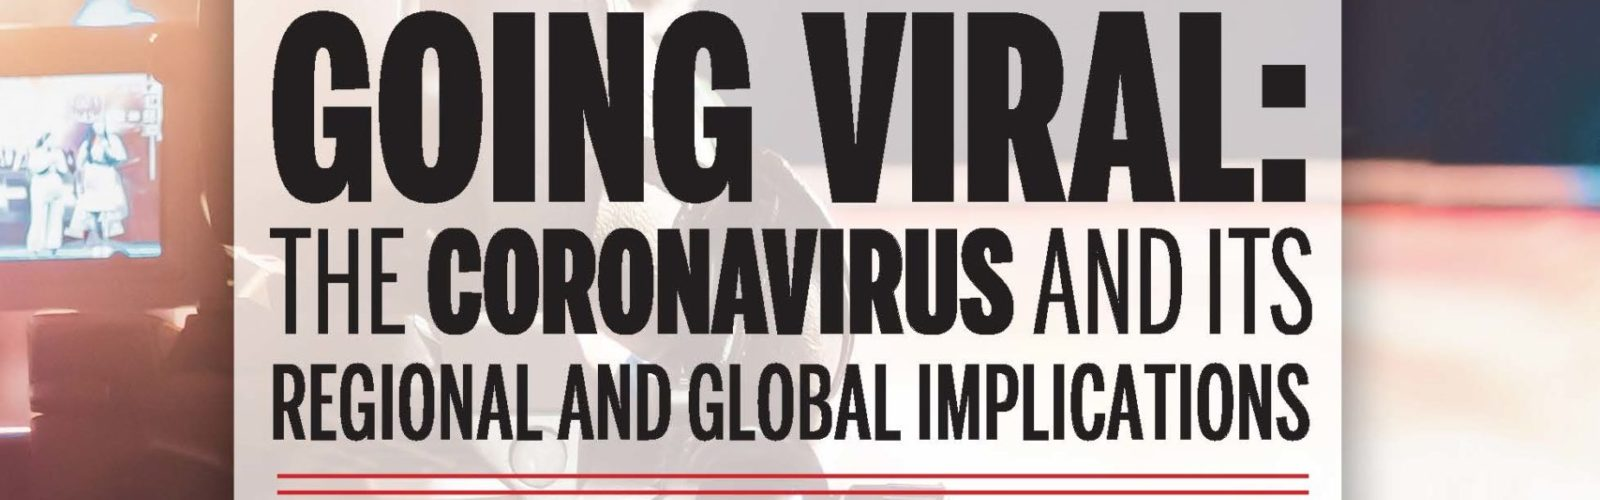 Going Viral: The Coronavirus and its Regional and Global Implications